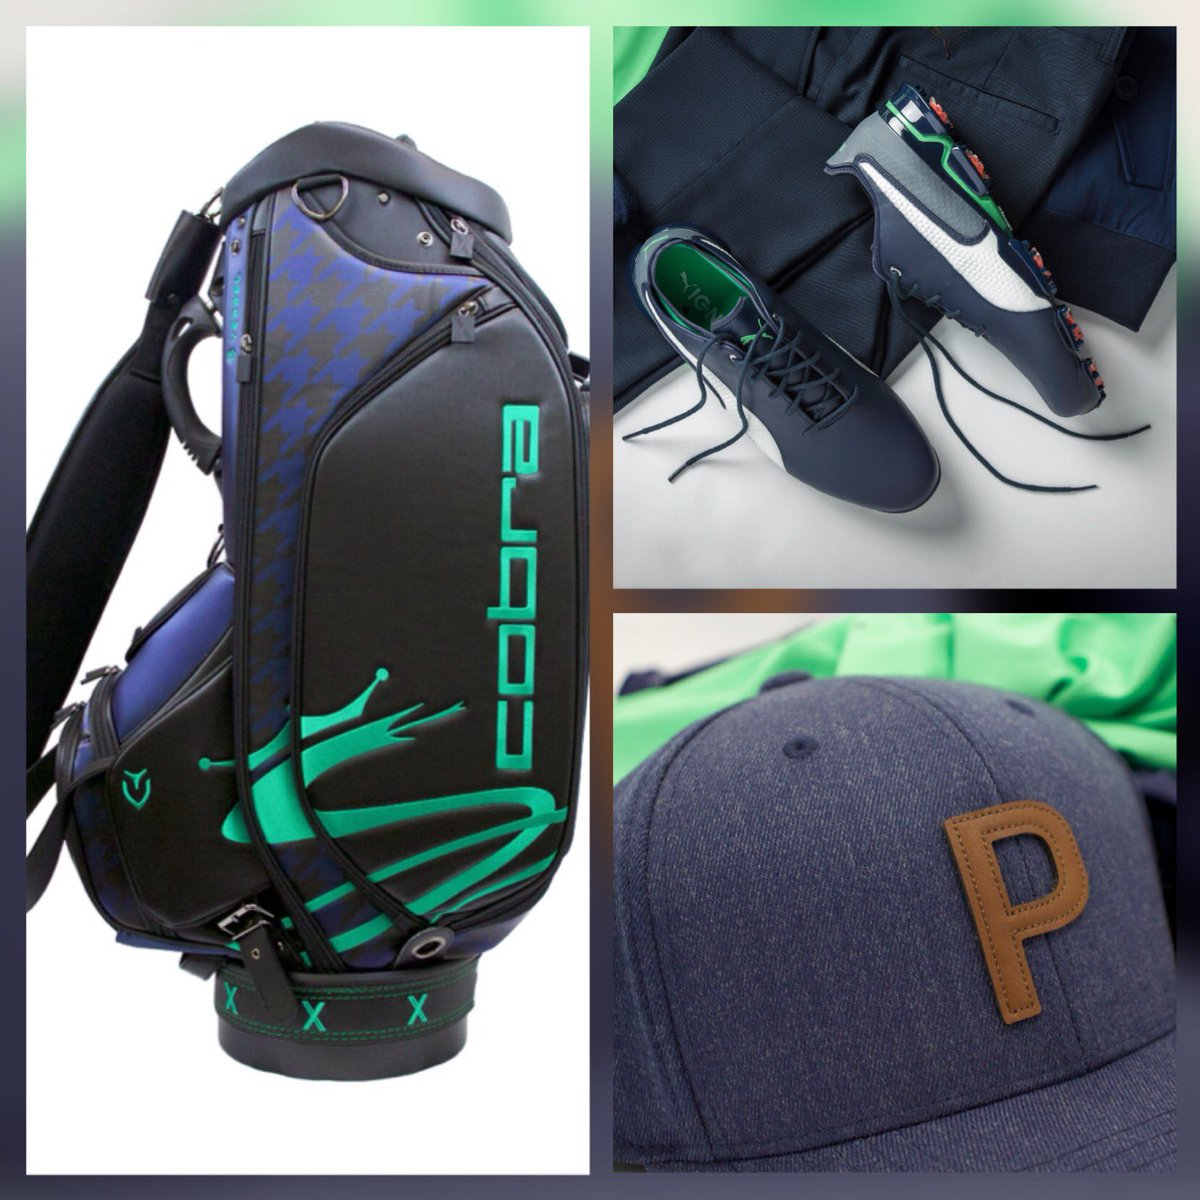 Loving the @cobragolfuk @pumagolfuk X Collection celebrating 10 years with @RickieFowler For a chance to win an X Collection golf bag, pair of trainers and cap, simply reply below with who you think will win #TheOpen Good luck 🏌♂ #MakeYourMark #NXTLVL